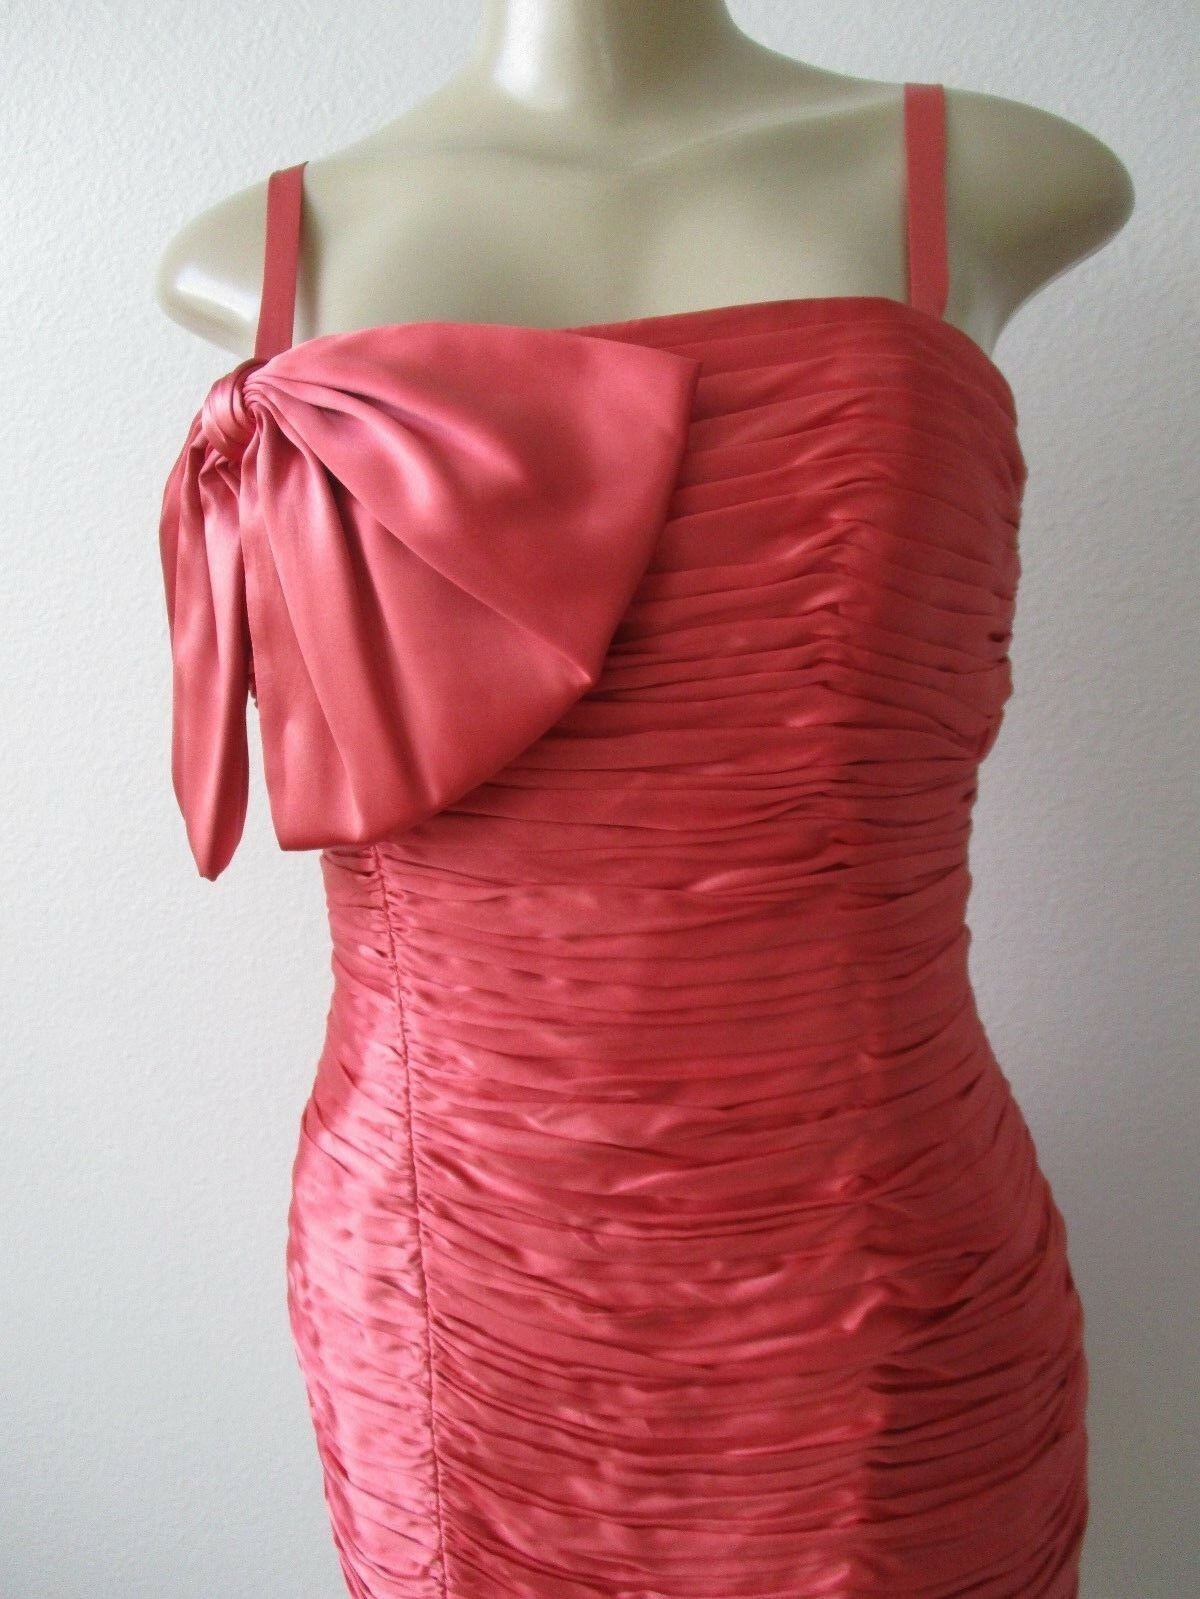 395 LAUNDRY BY SHELLI SEGAL CORAL SPAGHETTI STRAP EVENING EVENING EVENING DRESS SIZE 8 - NWT d275c5